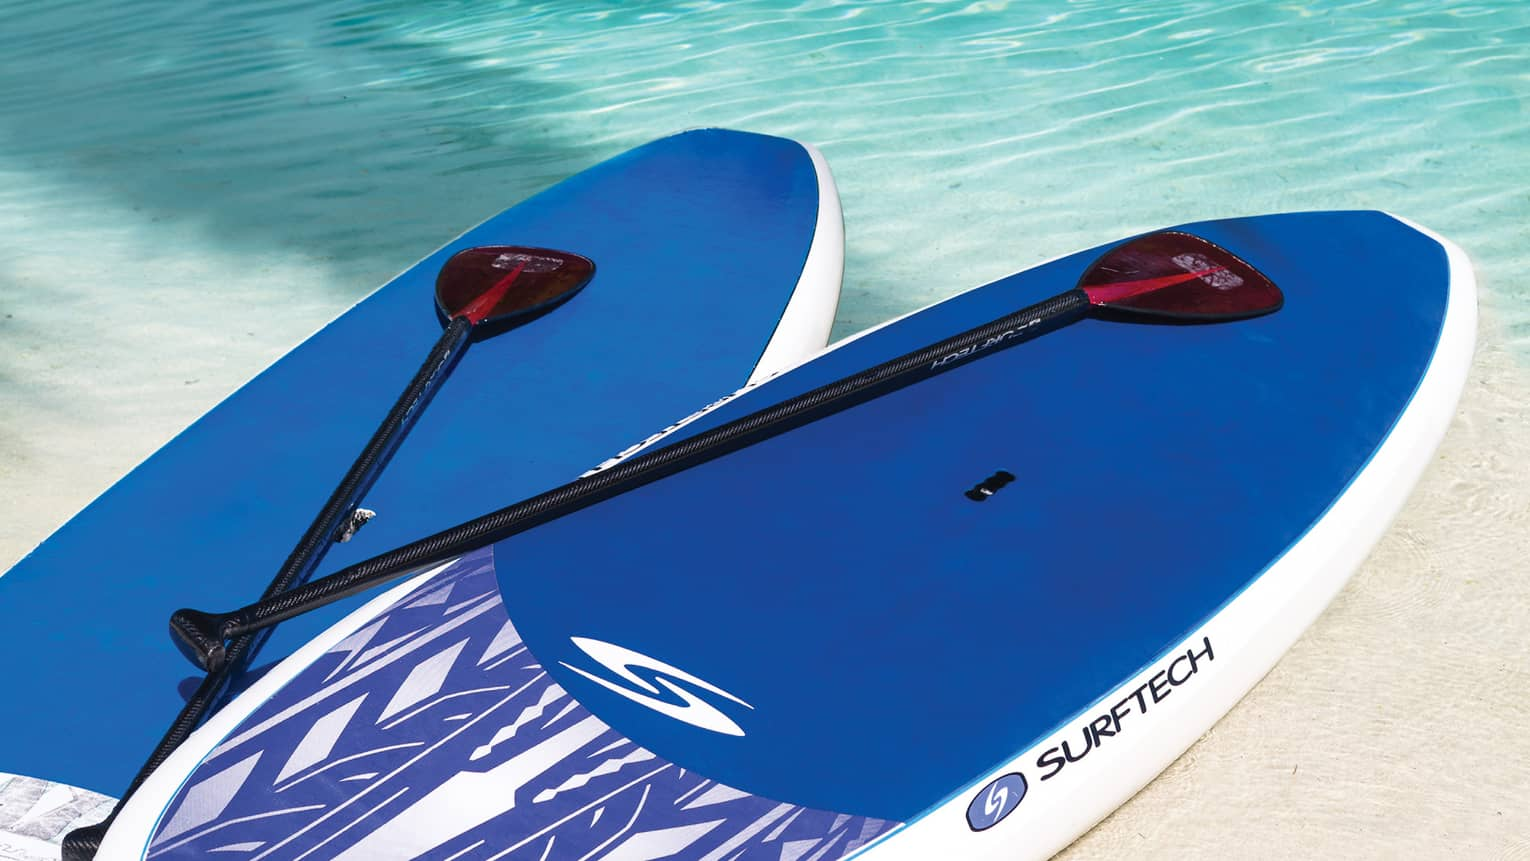 Close-up of two blue stand-up paddleboards and paddles